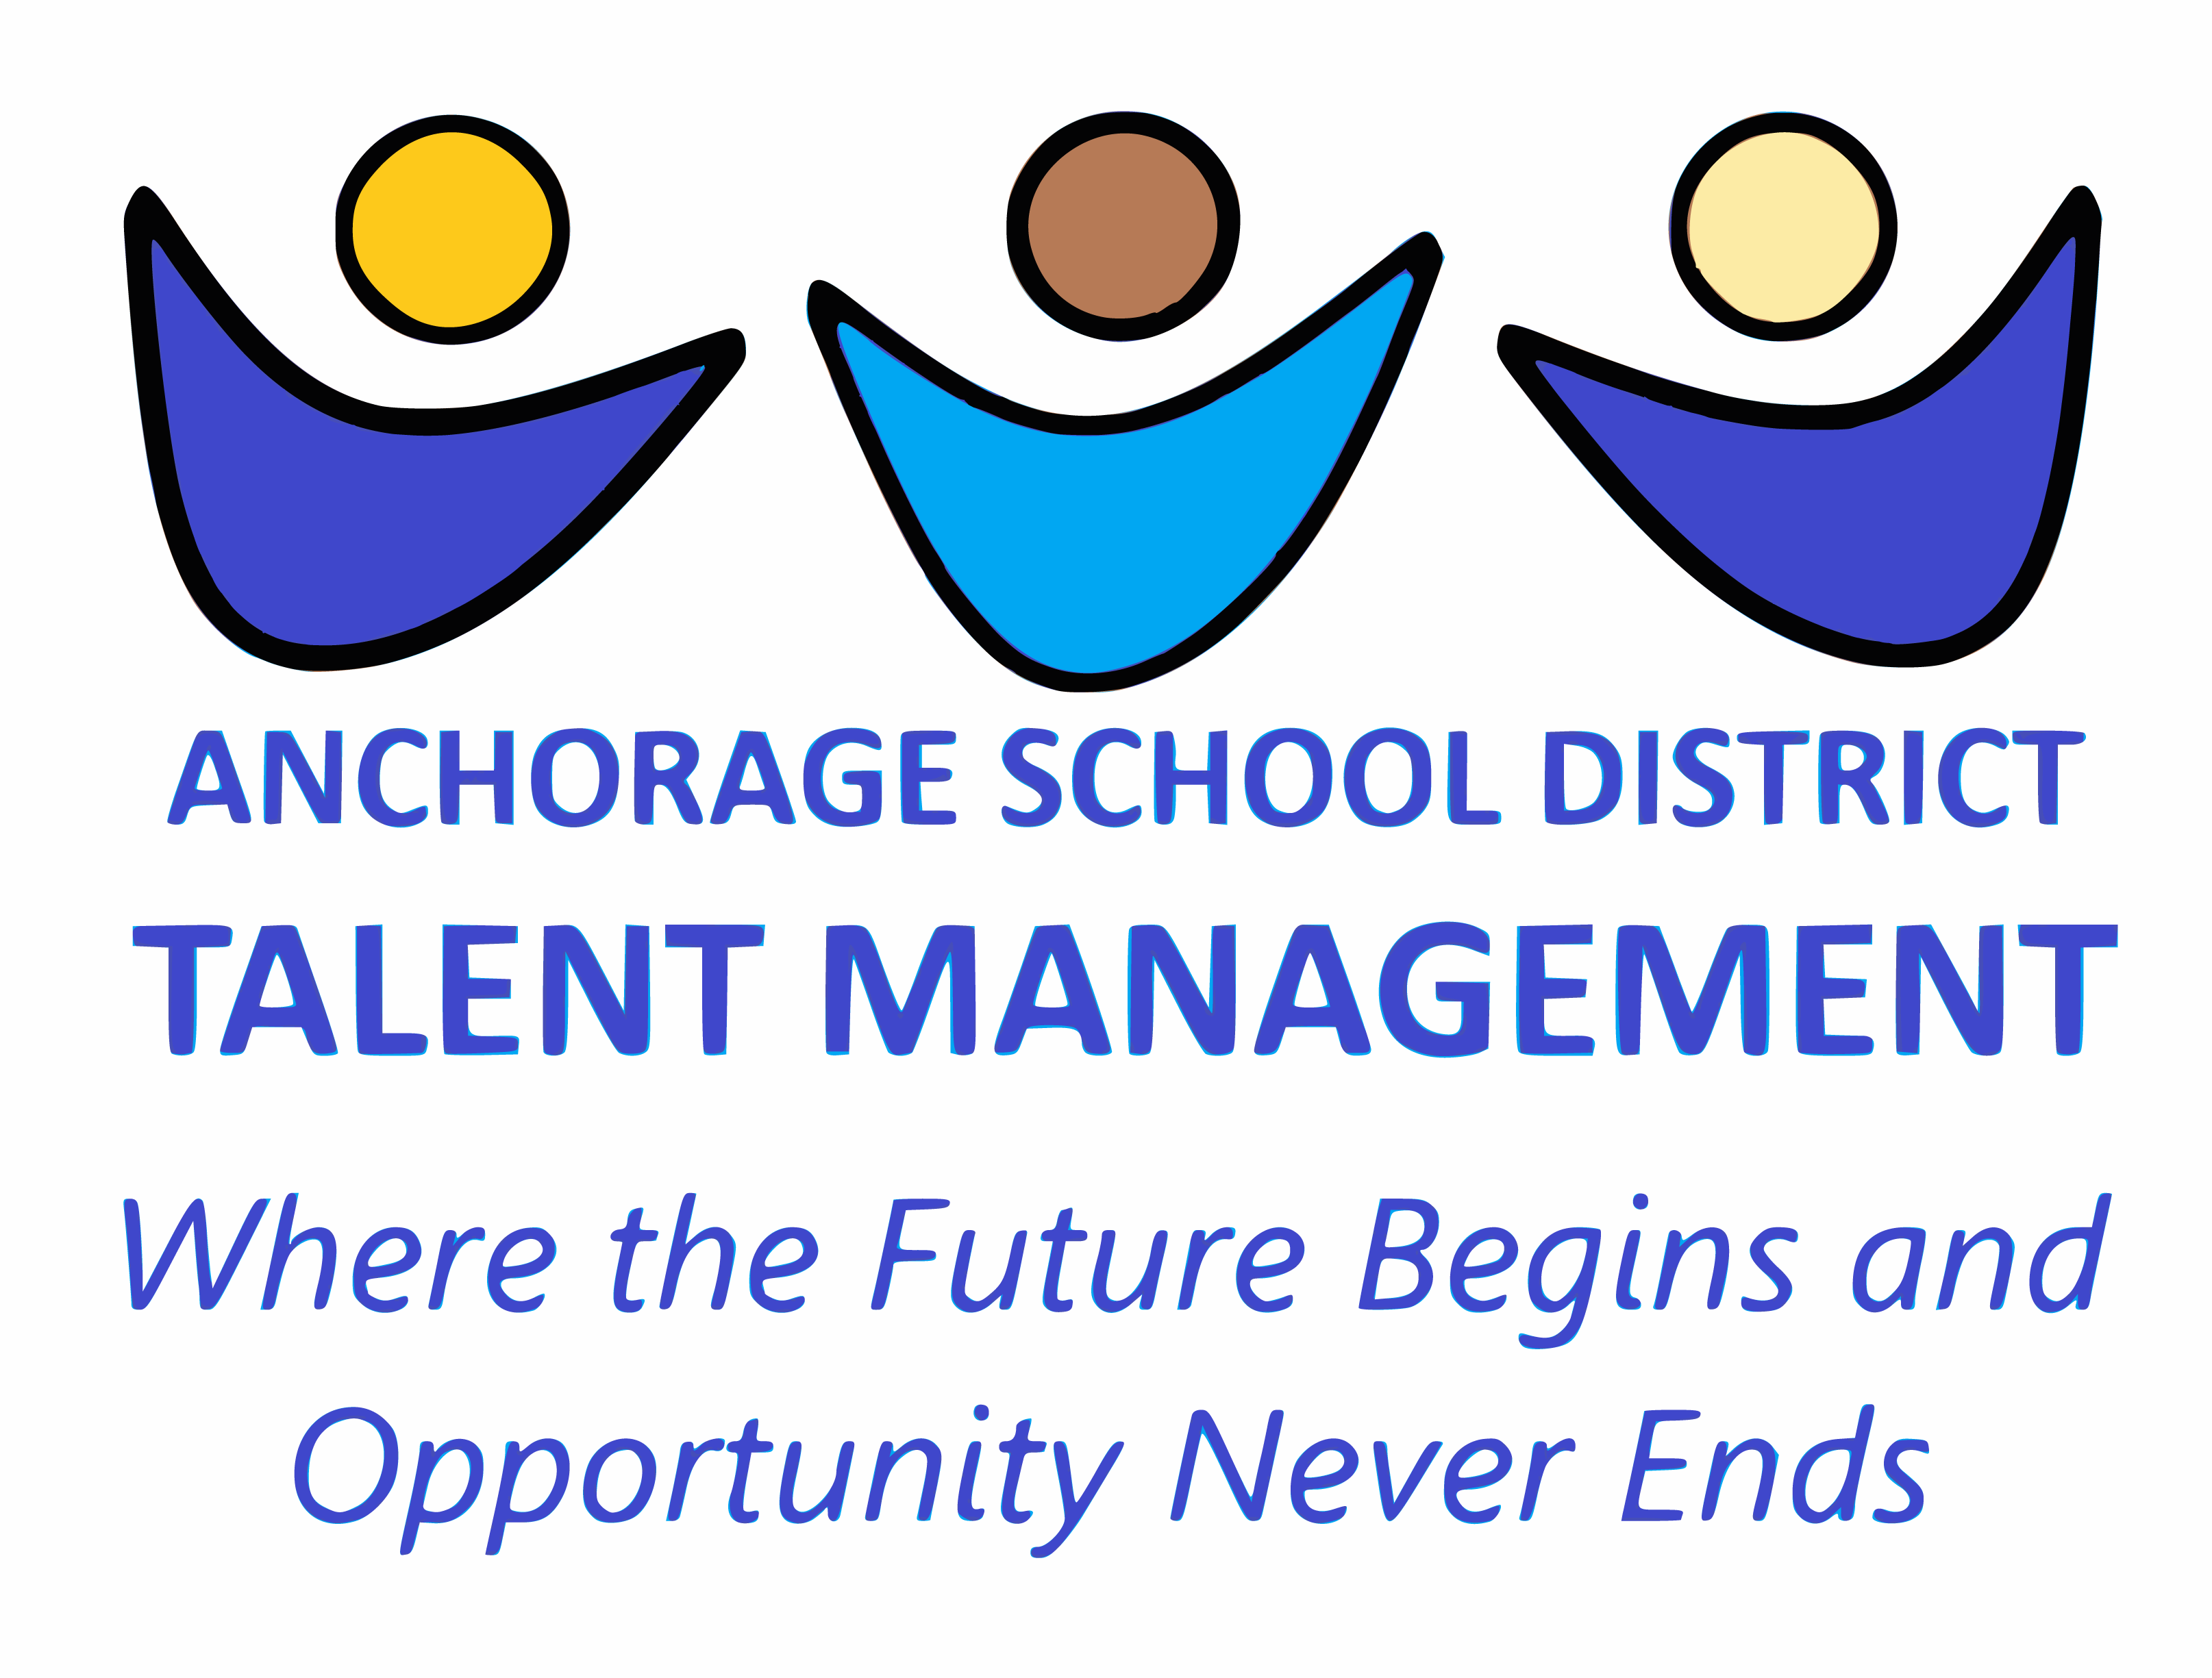 ASD Talent Management Logo and vision statement